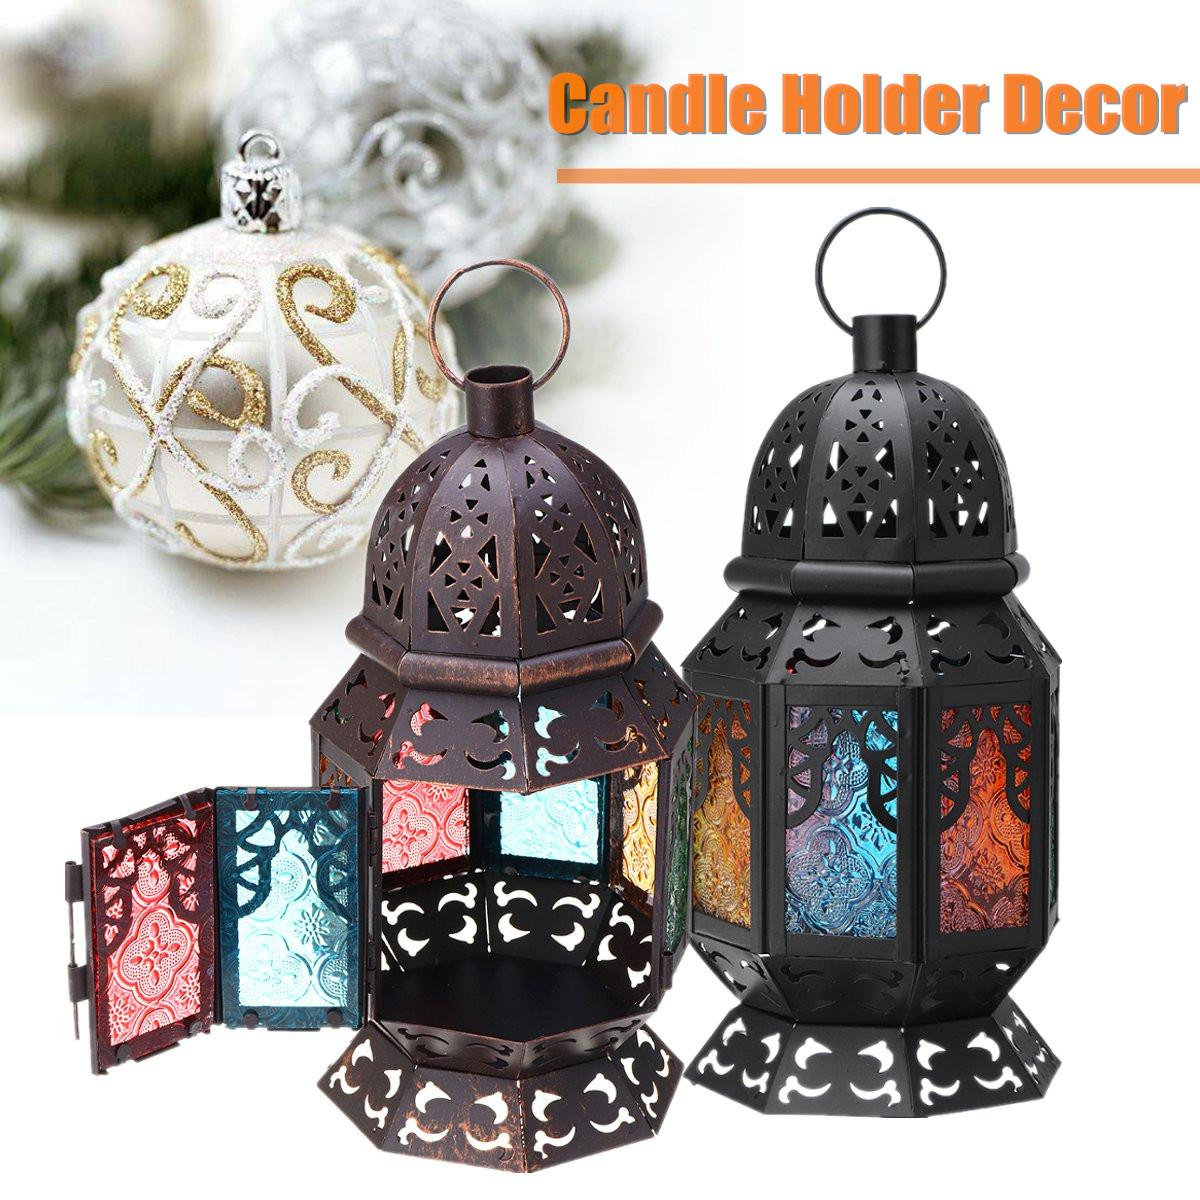 Home & Garden Moroccan Hanging Multi Coloured Glass Lantern Tea Lights Candle Holder 13x13x26cm Wedding Party Ornament Home Decorations Gifts Good Heat Preservation